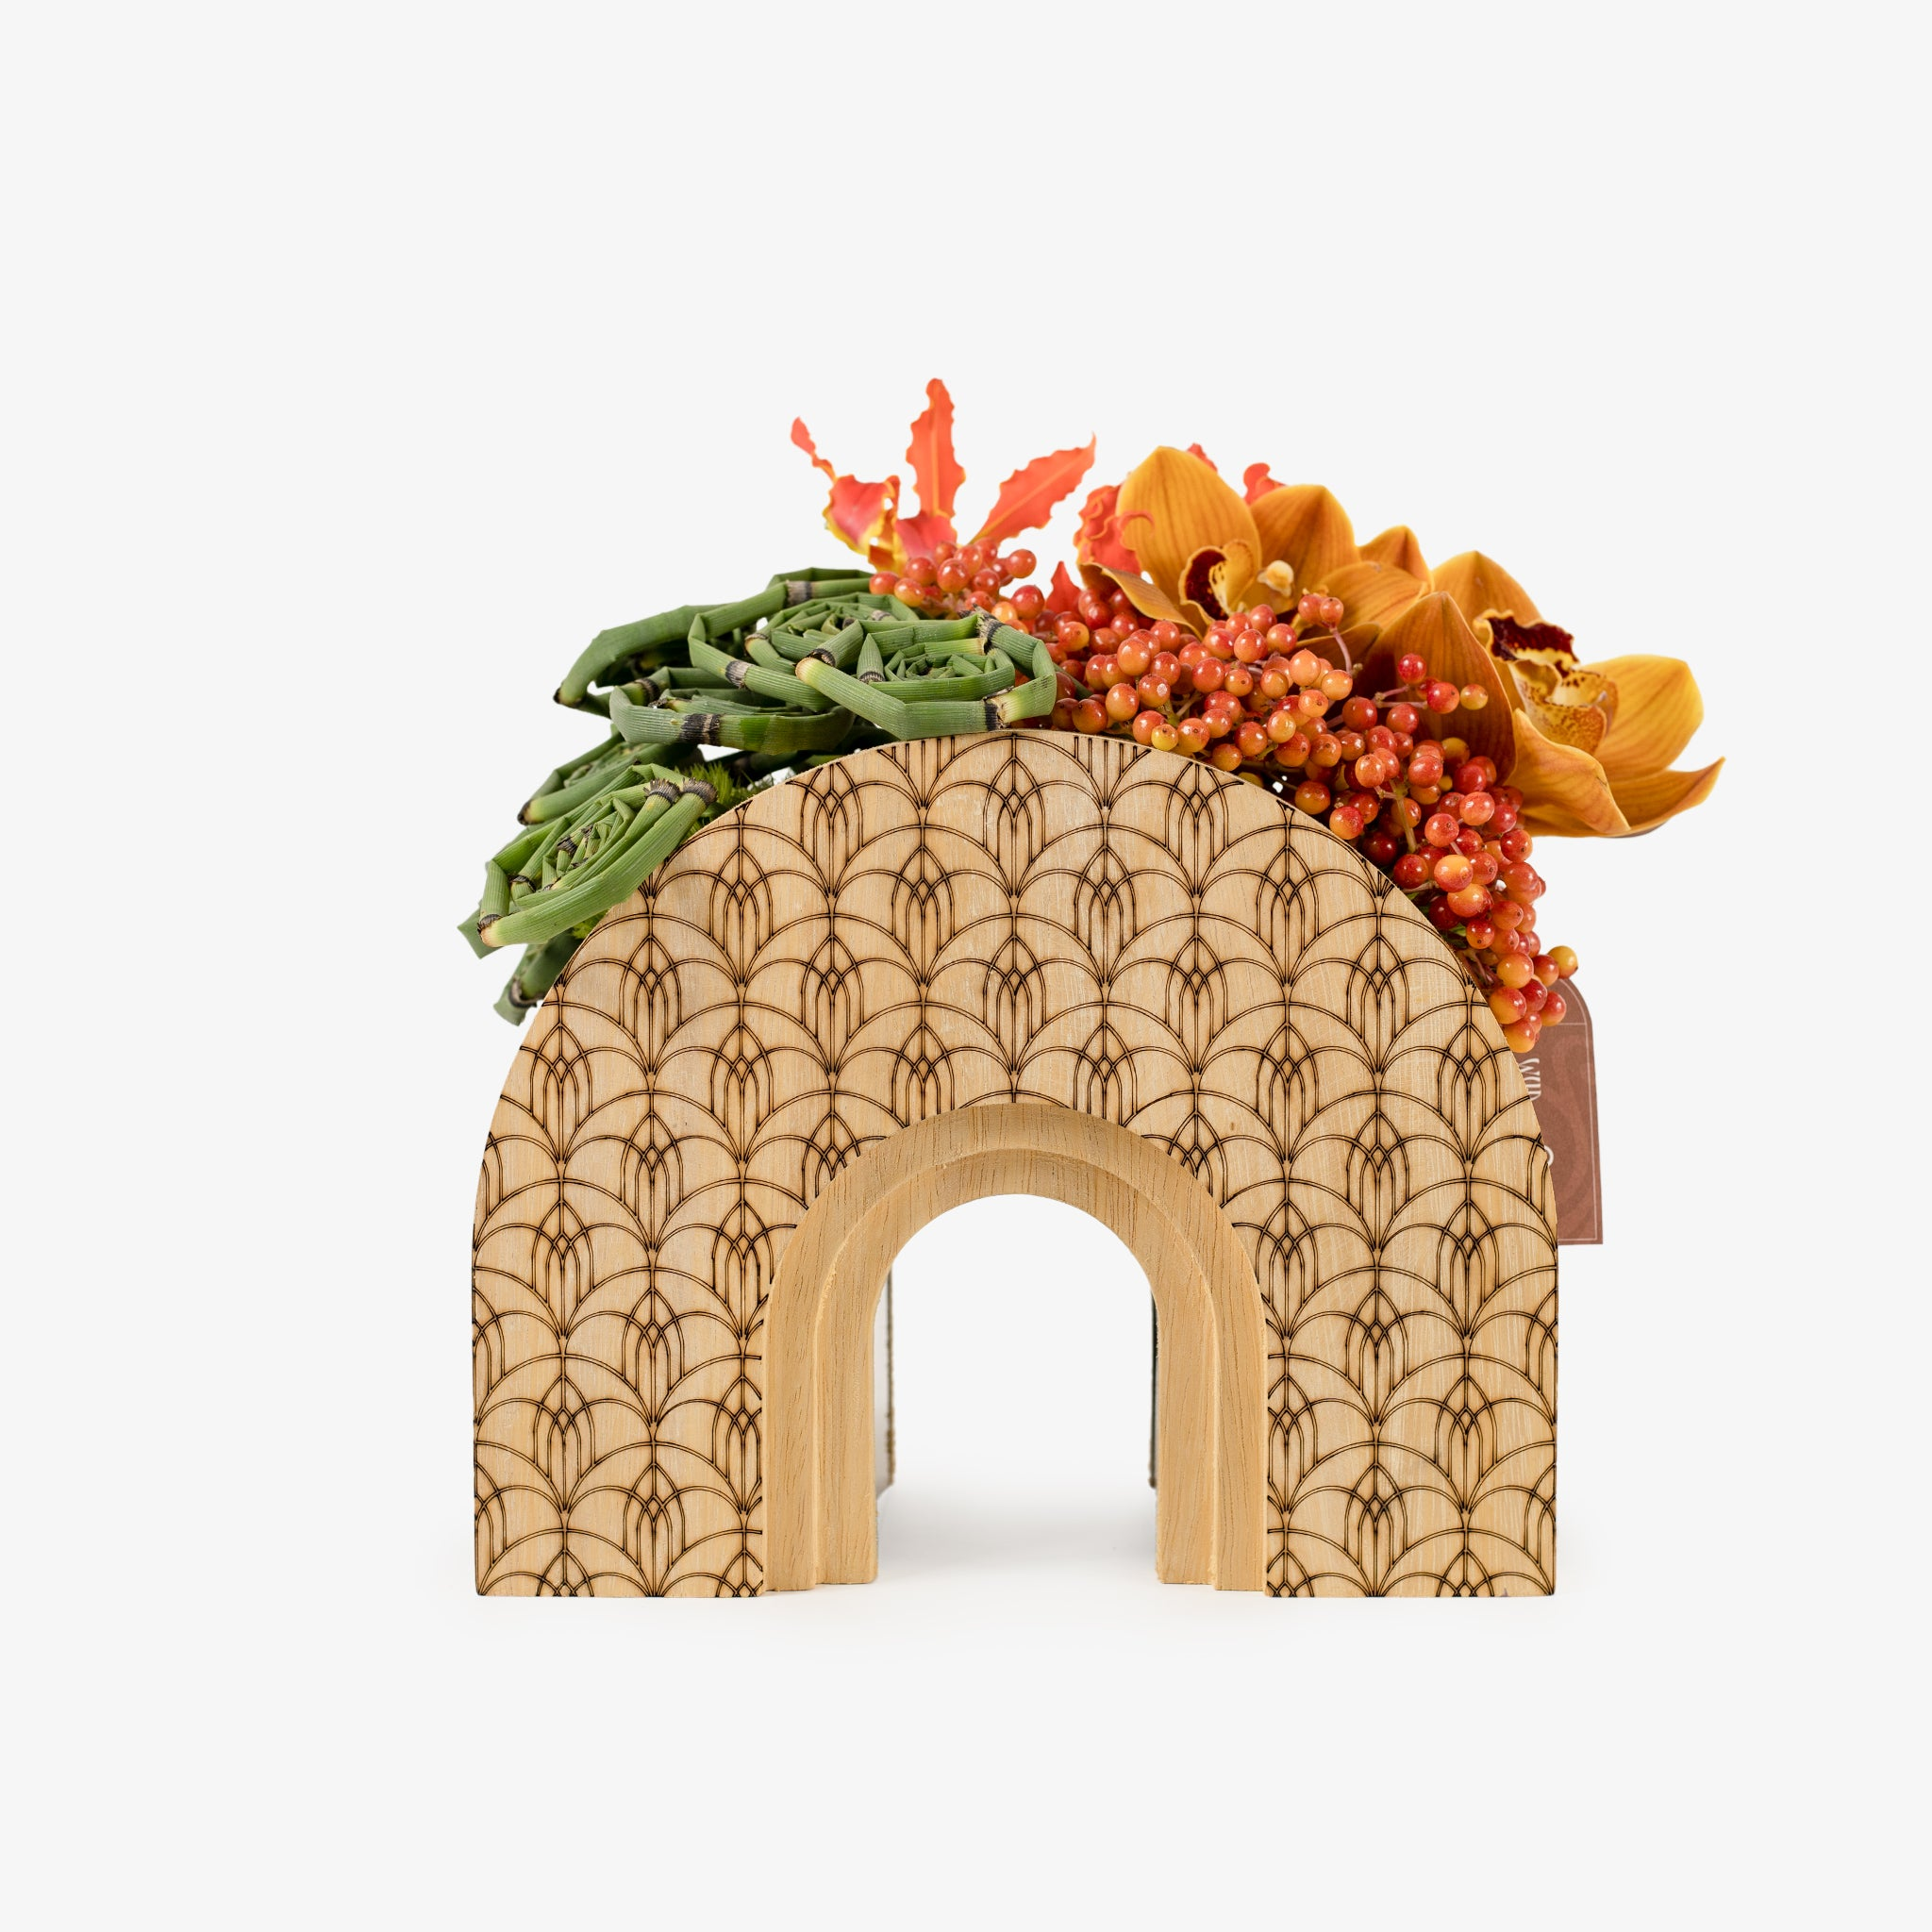 Wooden Arch - Wudflowers